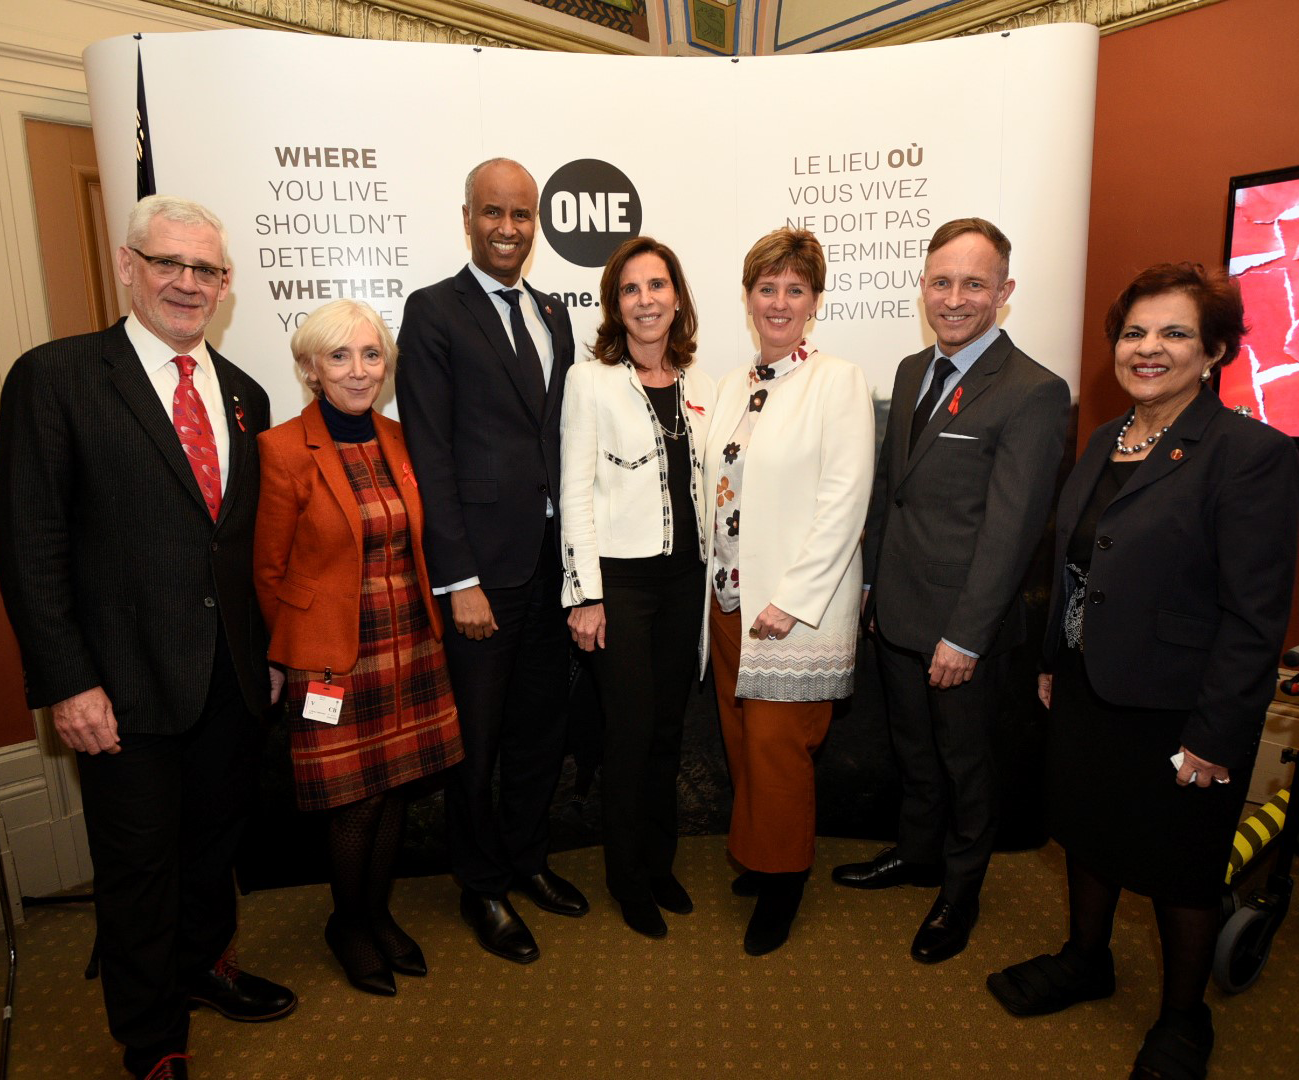 World AIDS Day (December 1st) was marked by the ONE Campaign with a reception on Parliament Hill. Pictured left to right: Dr. Julio Montaner, Director of the British Columbia Centre for Excellence in HIV/AIDS; Dr. Carole Presner, Global Fund for AIDS, Tuberculosis and Malaria; The Hon. Ahmed Hussen, Minister of Immigration, Refugees and Citizenship; Her Excellency Kareen Rispal, Ambassador of France to Canada; The Hon. Marie-Claude Bibeau, Minister of International Development; Mr. Stuart Hickox, Canada Director for The ONE Campaign; and Senator Mobina Jaffer.